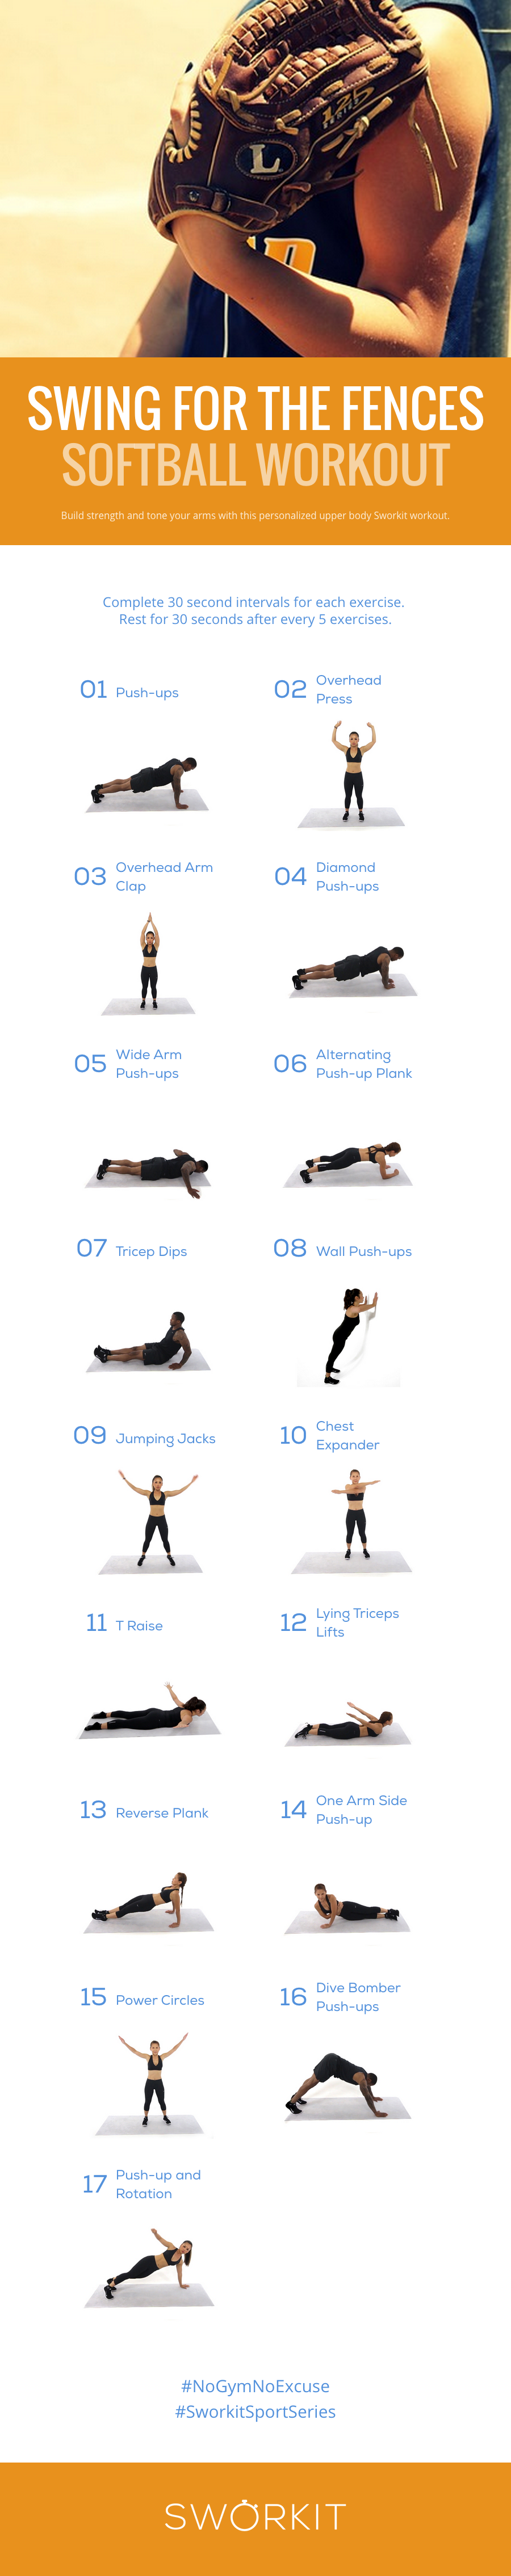 Softball Custom Workout For Sworkit For Ios And Android If You Have The Sworkit App You Can Import This Workout Dir Softball Workouts Girls Softball Softball